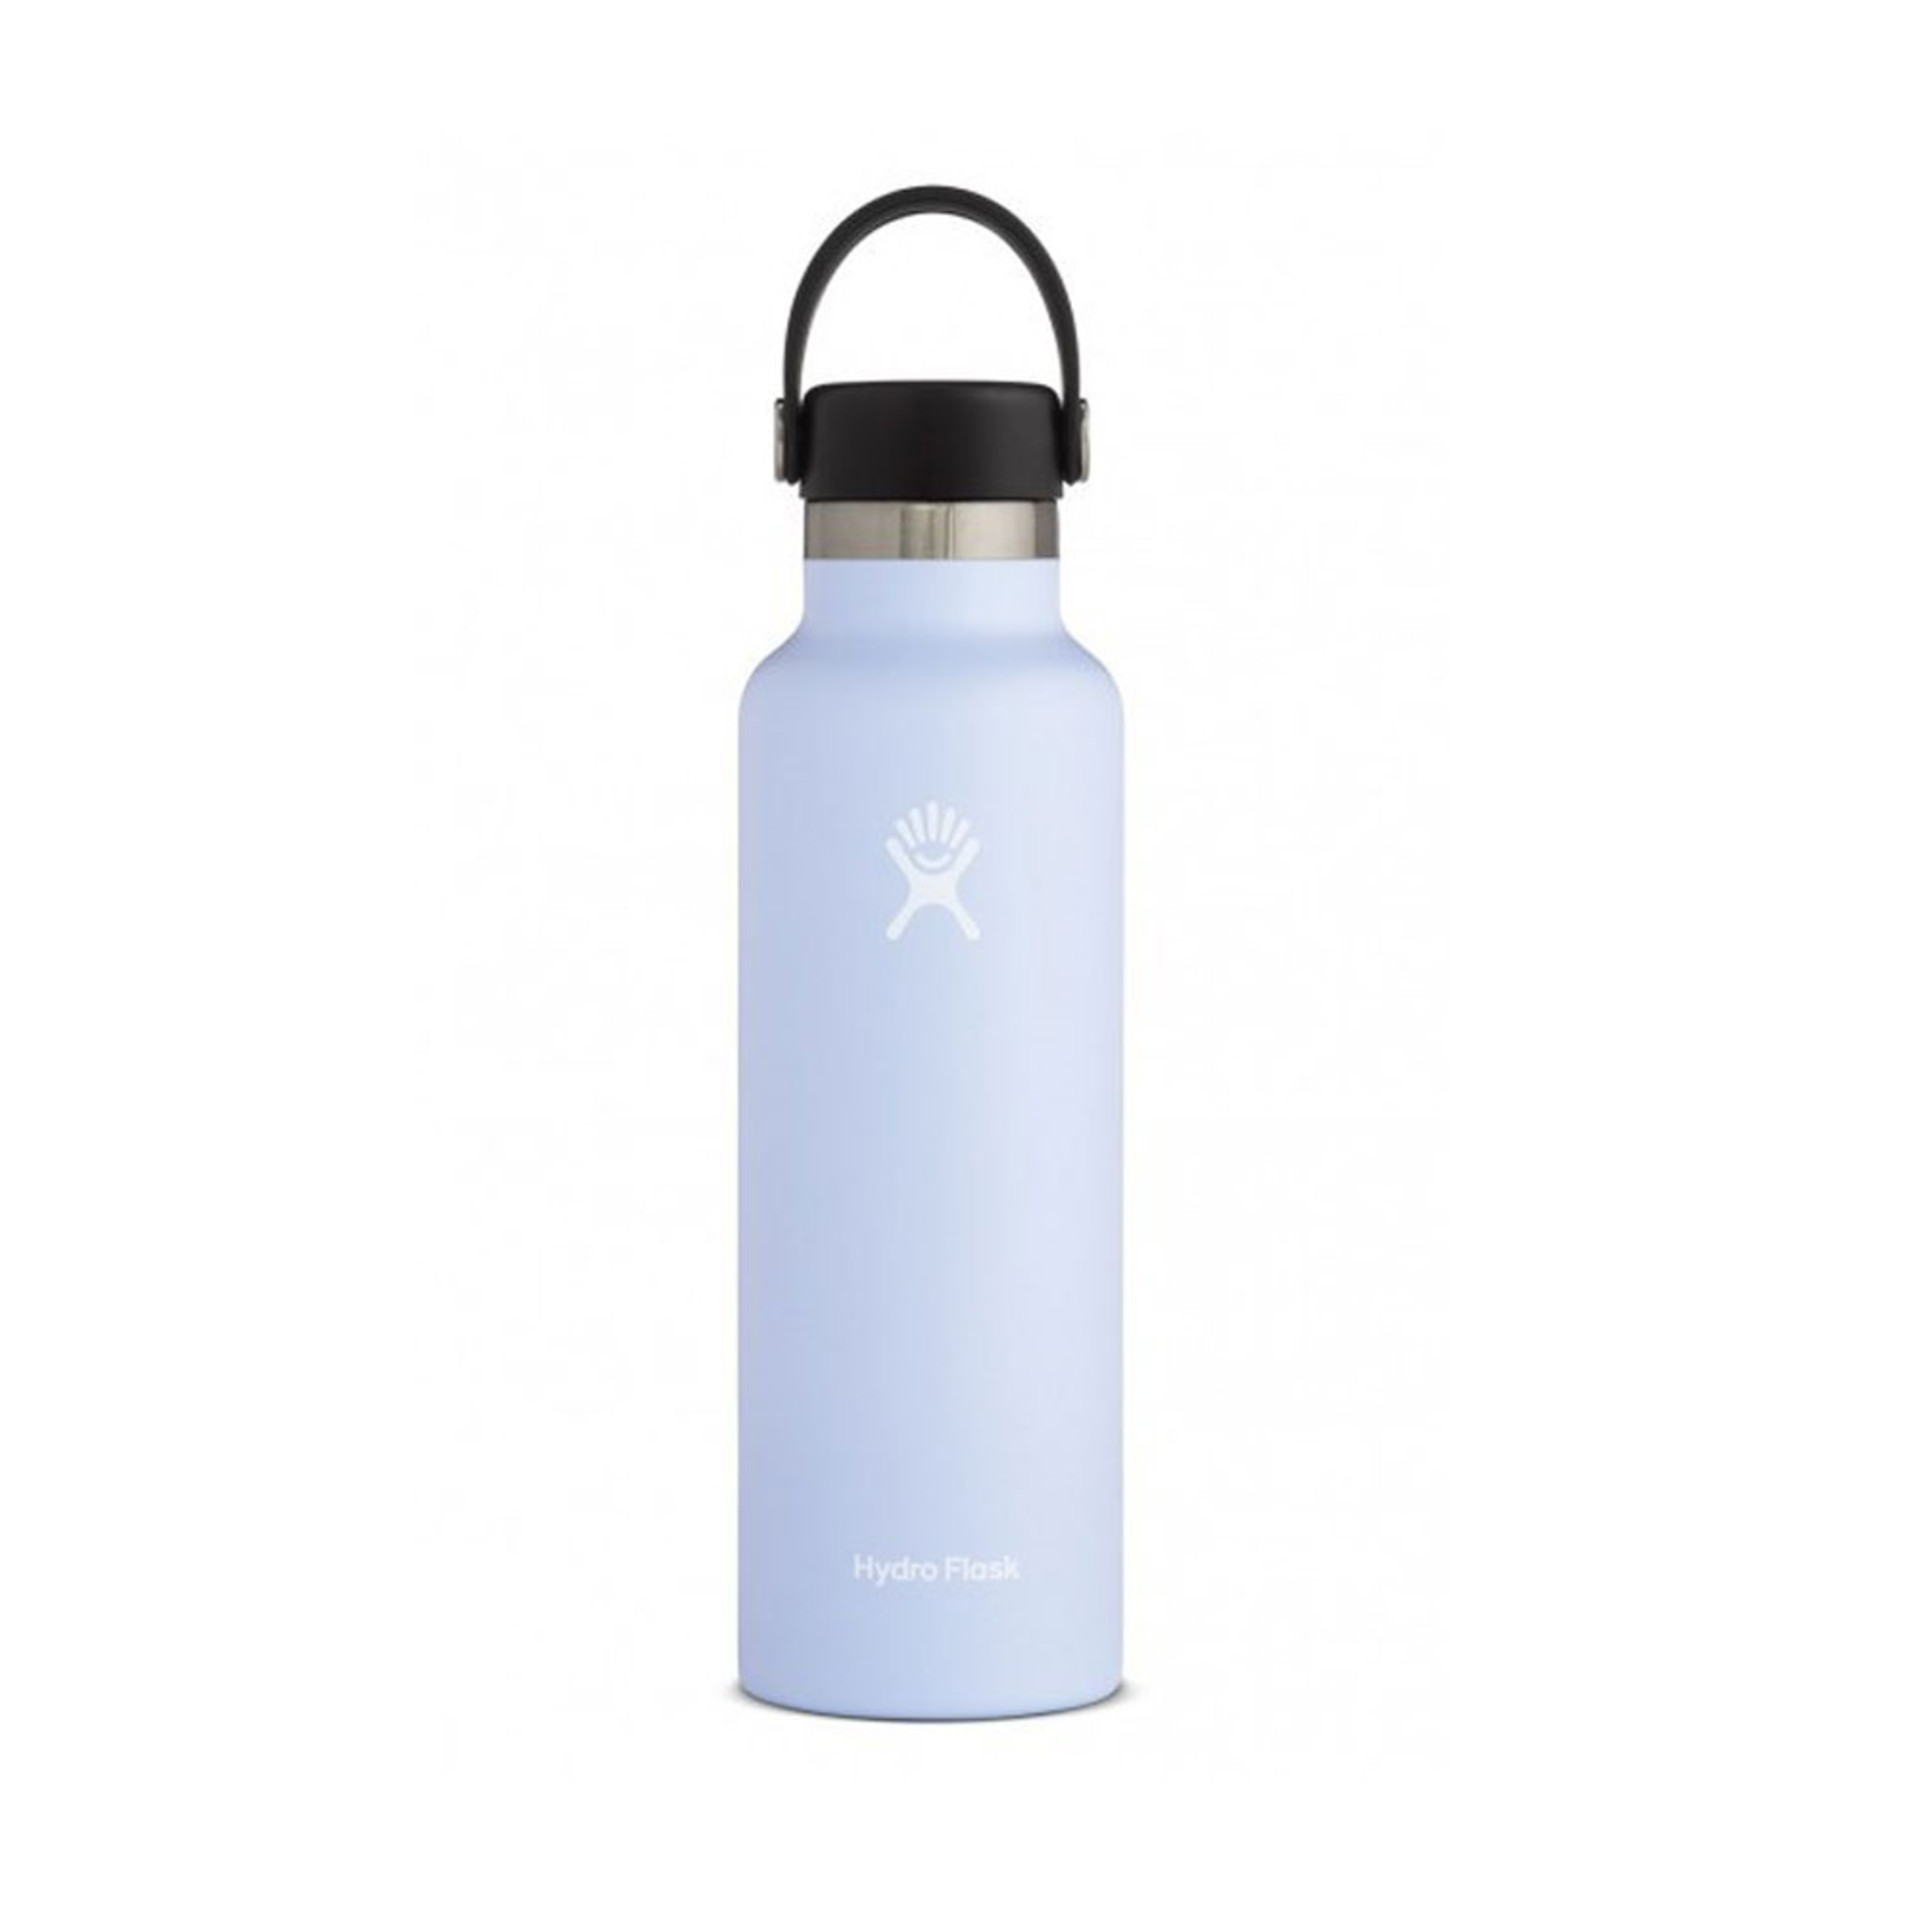 Hydro Flask Standard Mouth Water Bottle 21oz - Fog